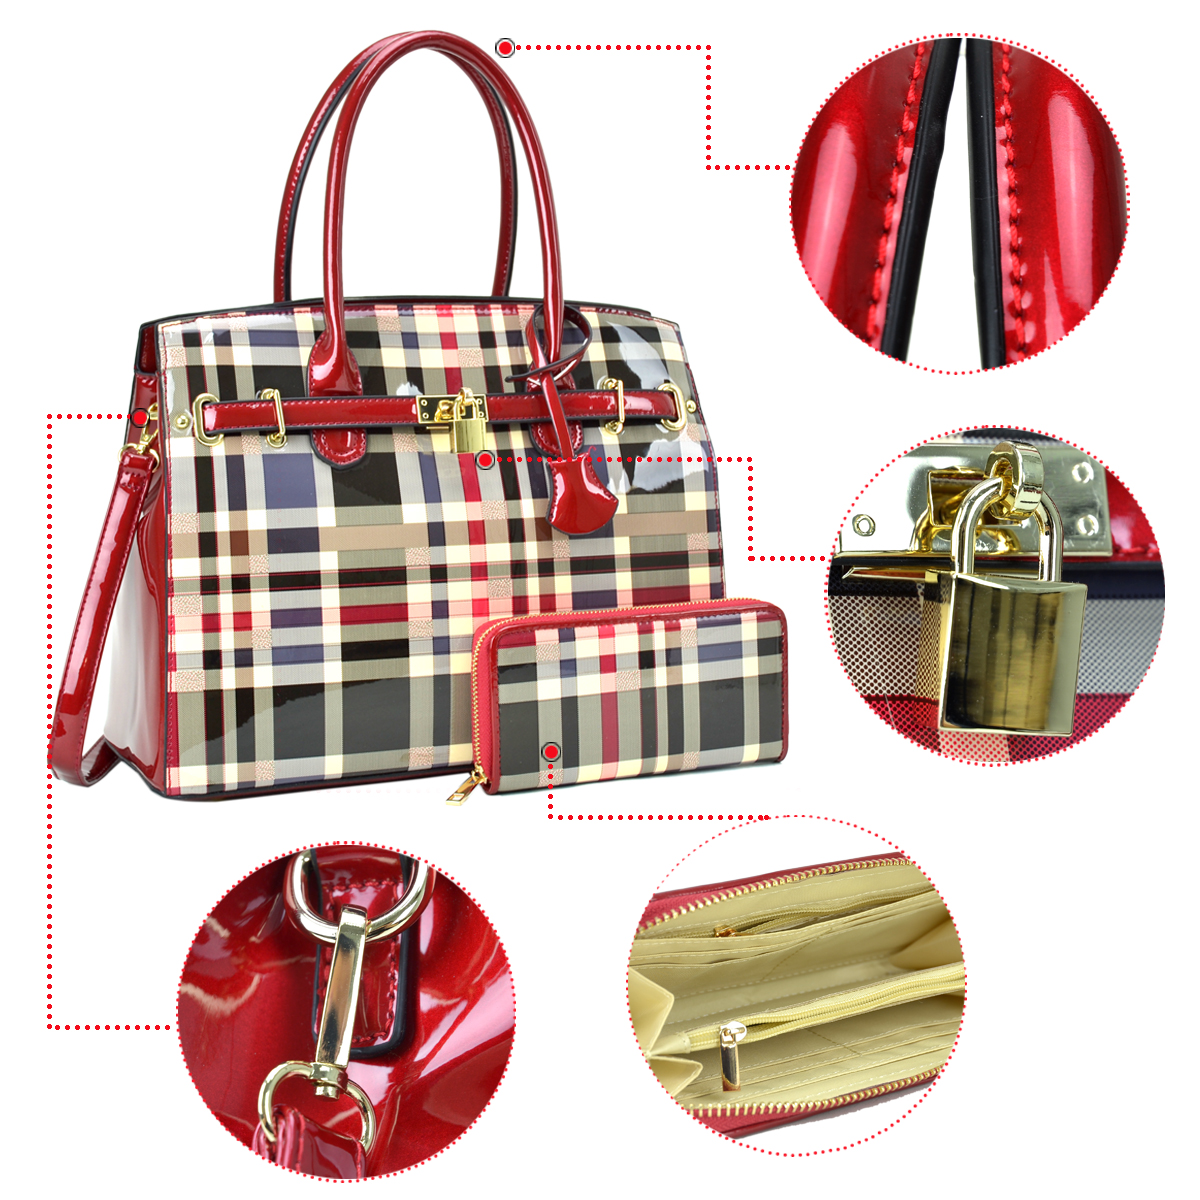 Plaid Design Patent Leather Medium Satchel with padlock deco plus  Matching Wallet